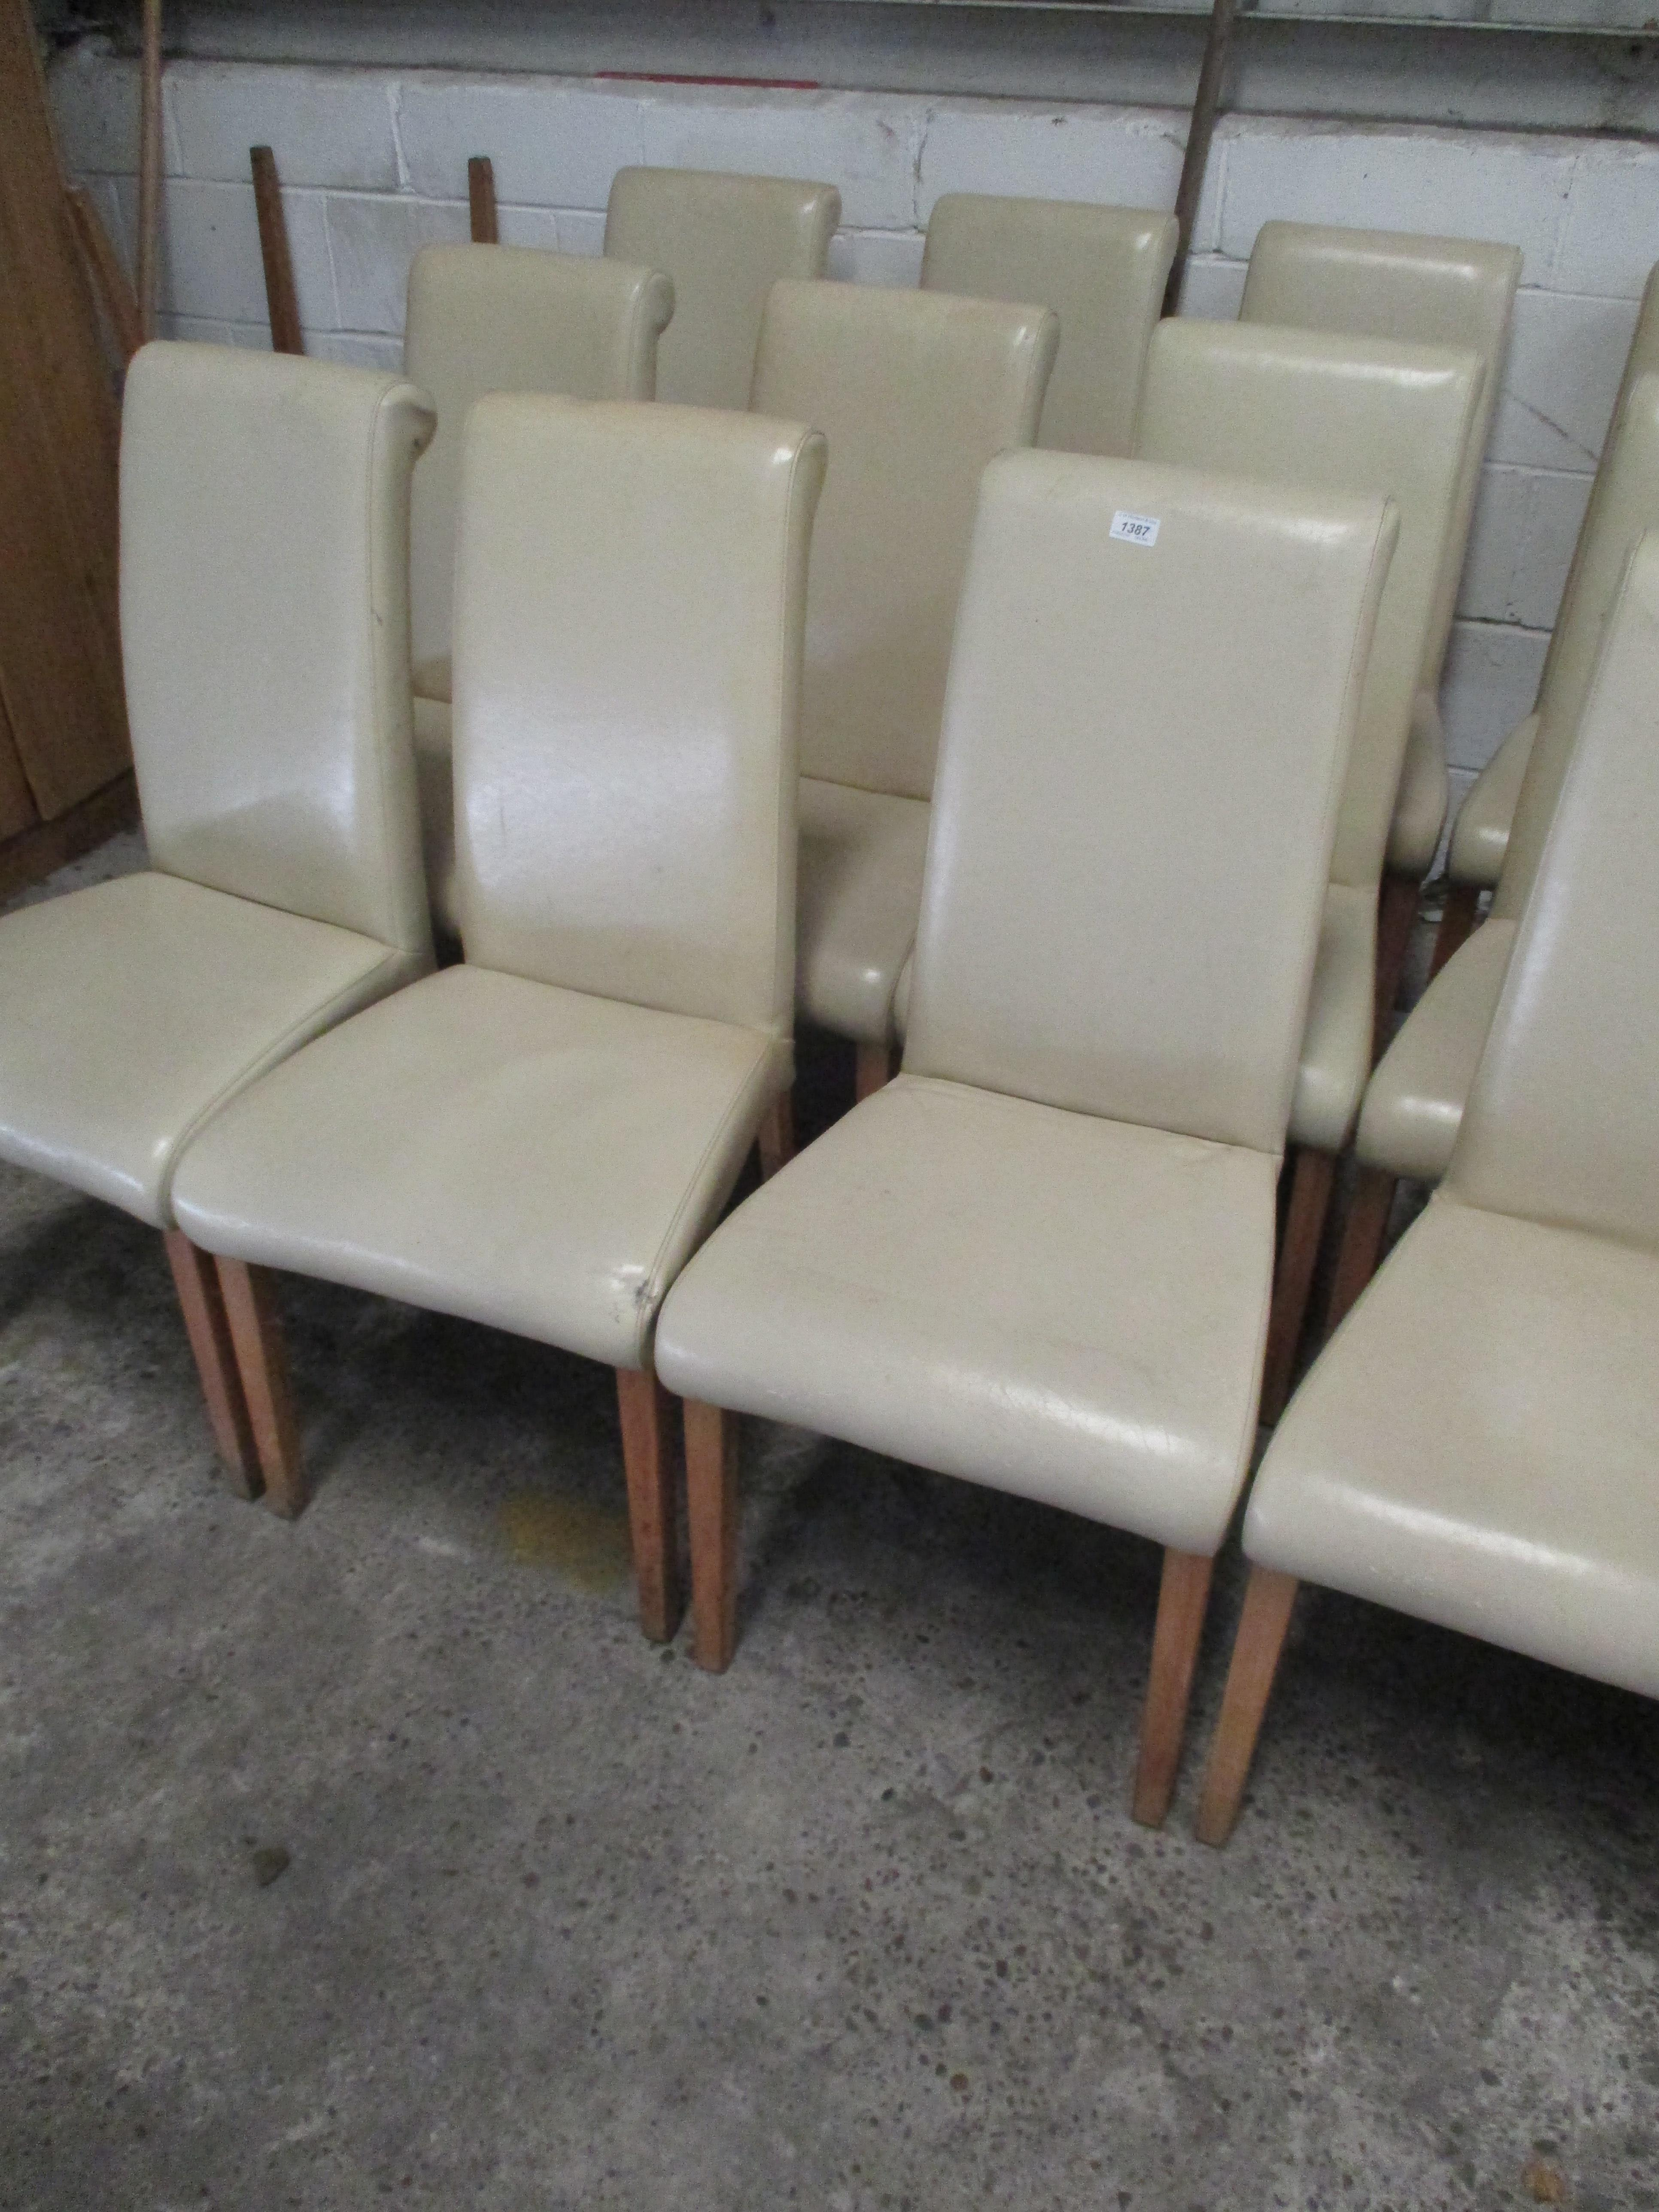 Lot 1387 - 11 x cream leather upholstered high back dining chairs on light wooden feet